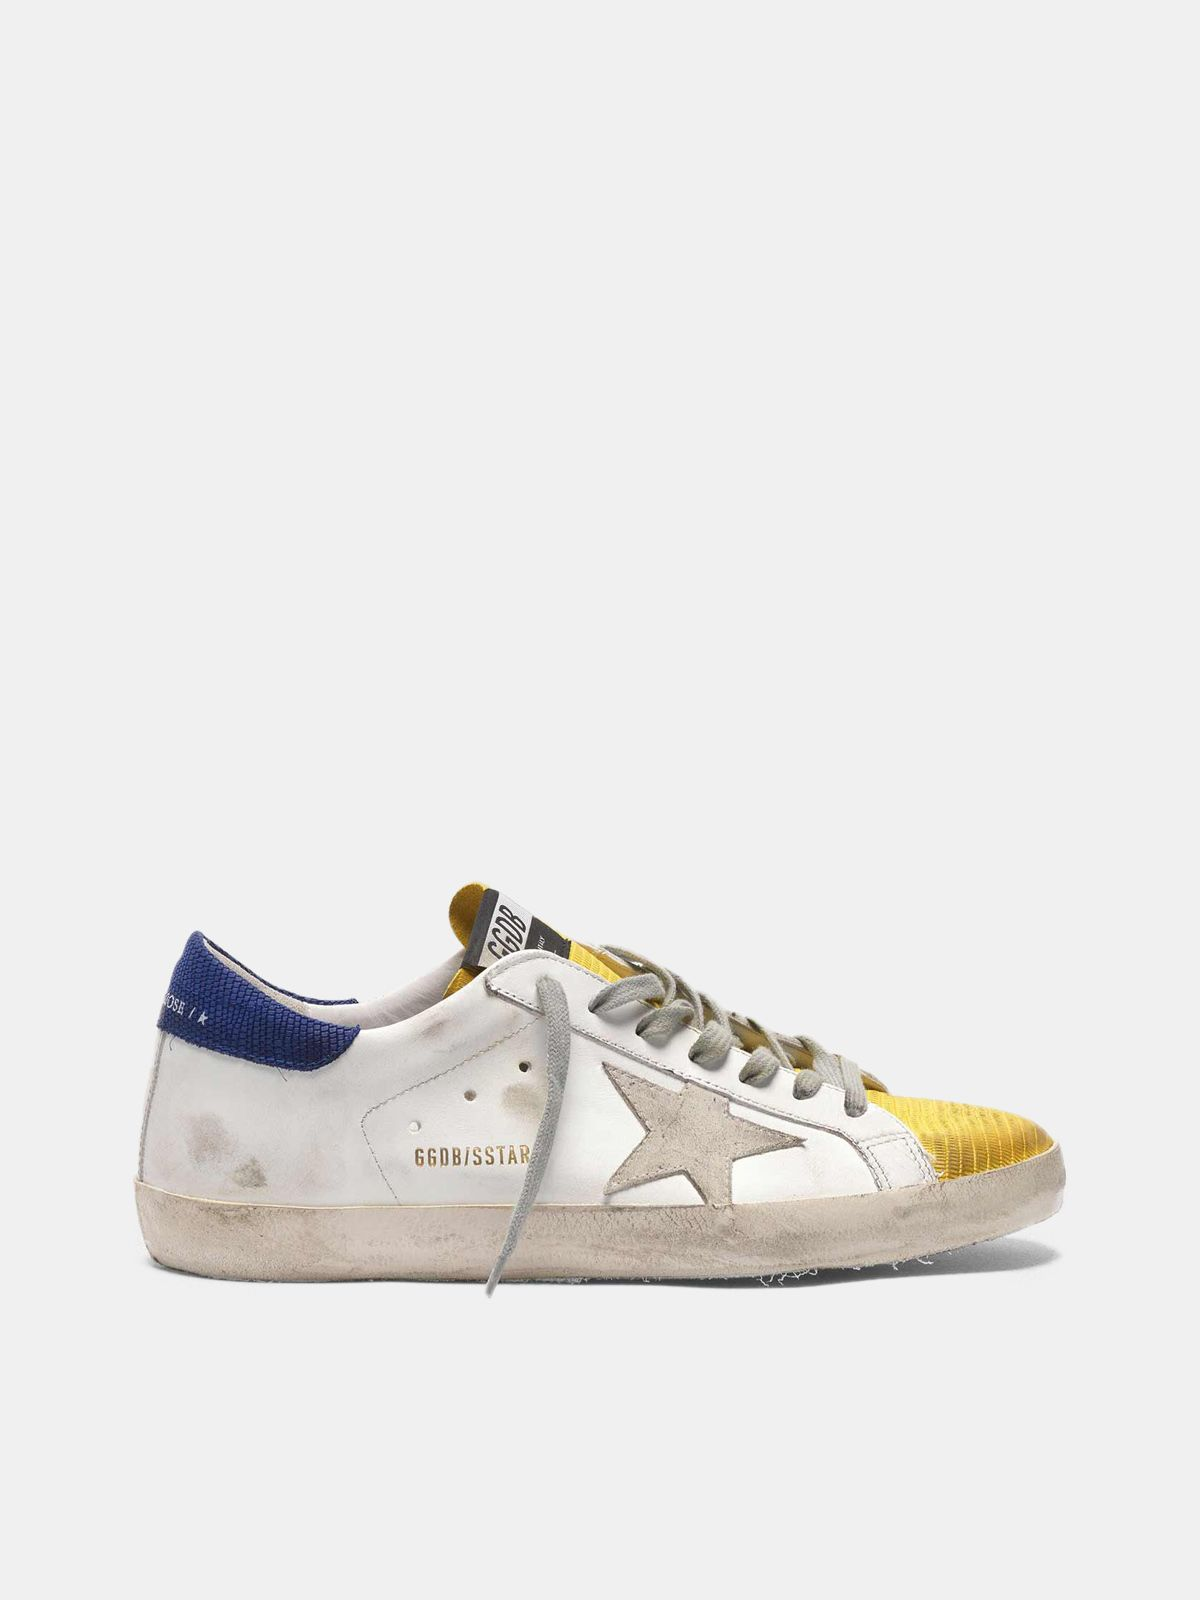 Golden Goose - Sneakers Super-Star bicolores avec empiècement jaune à imprimé lézard in